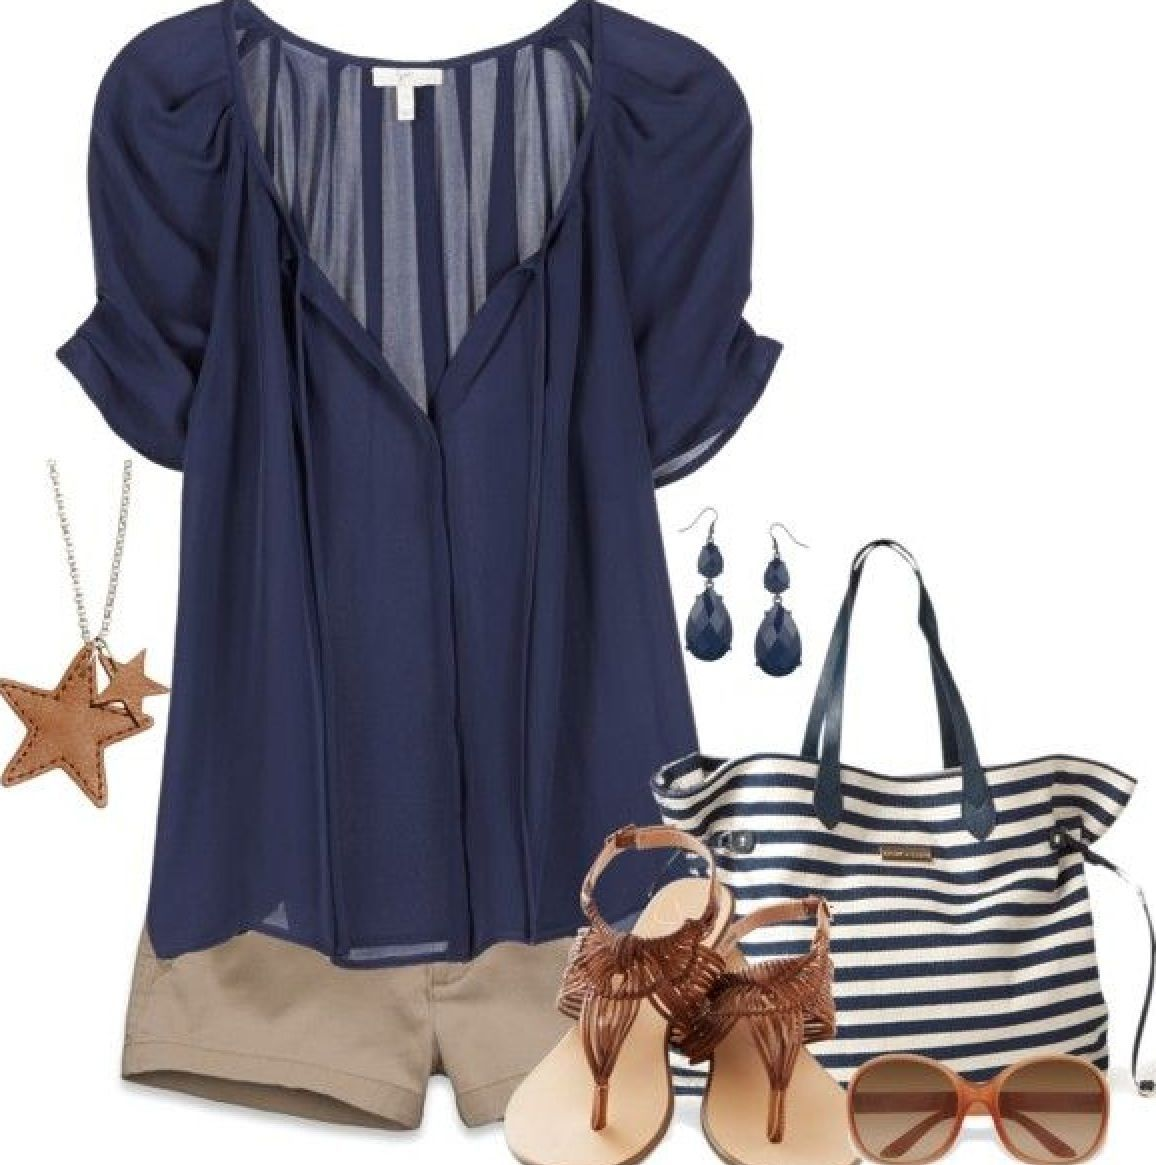 12 summer vacations in Texas outfits that you can copy - summervacationsin.com